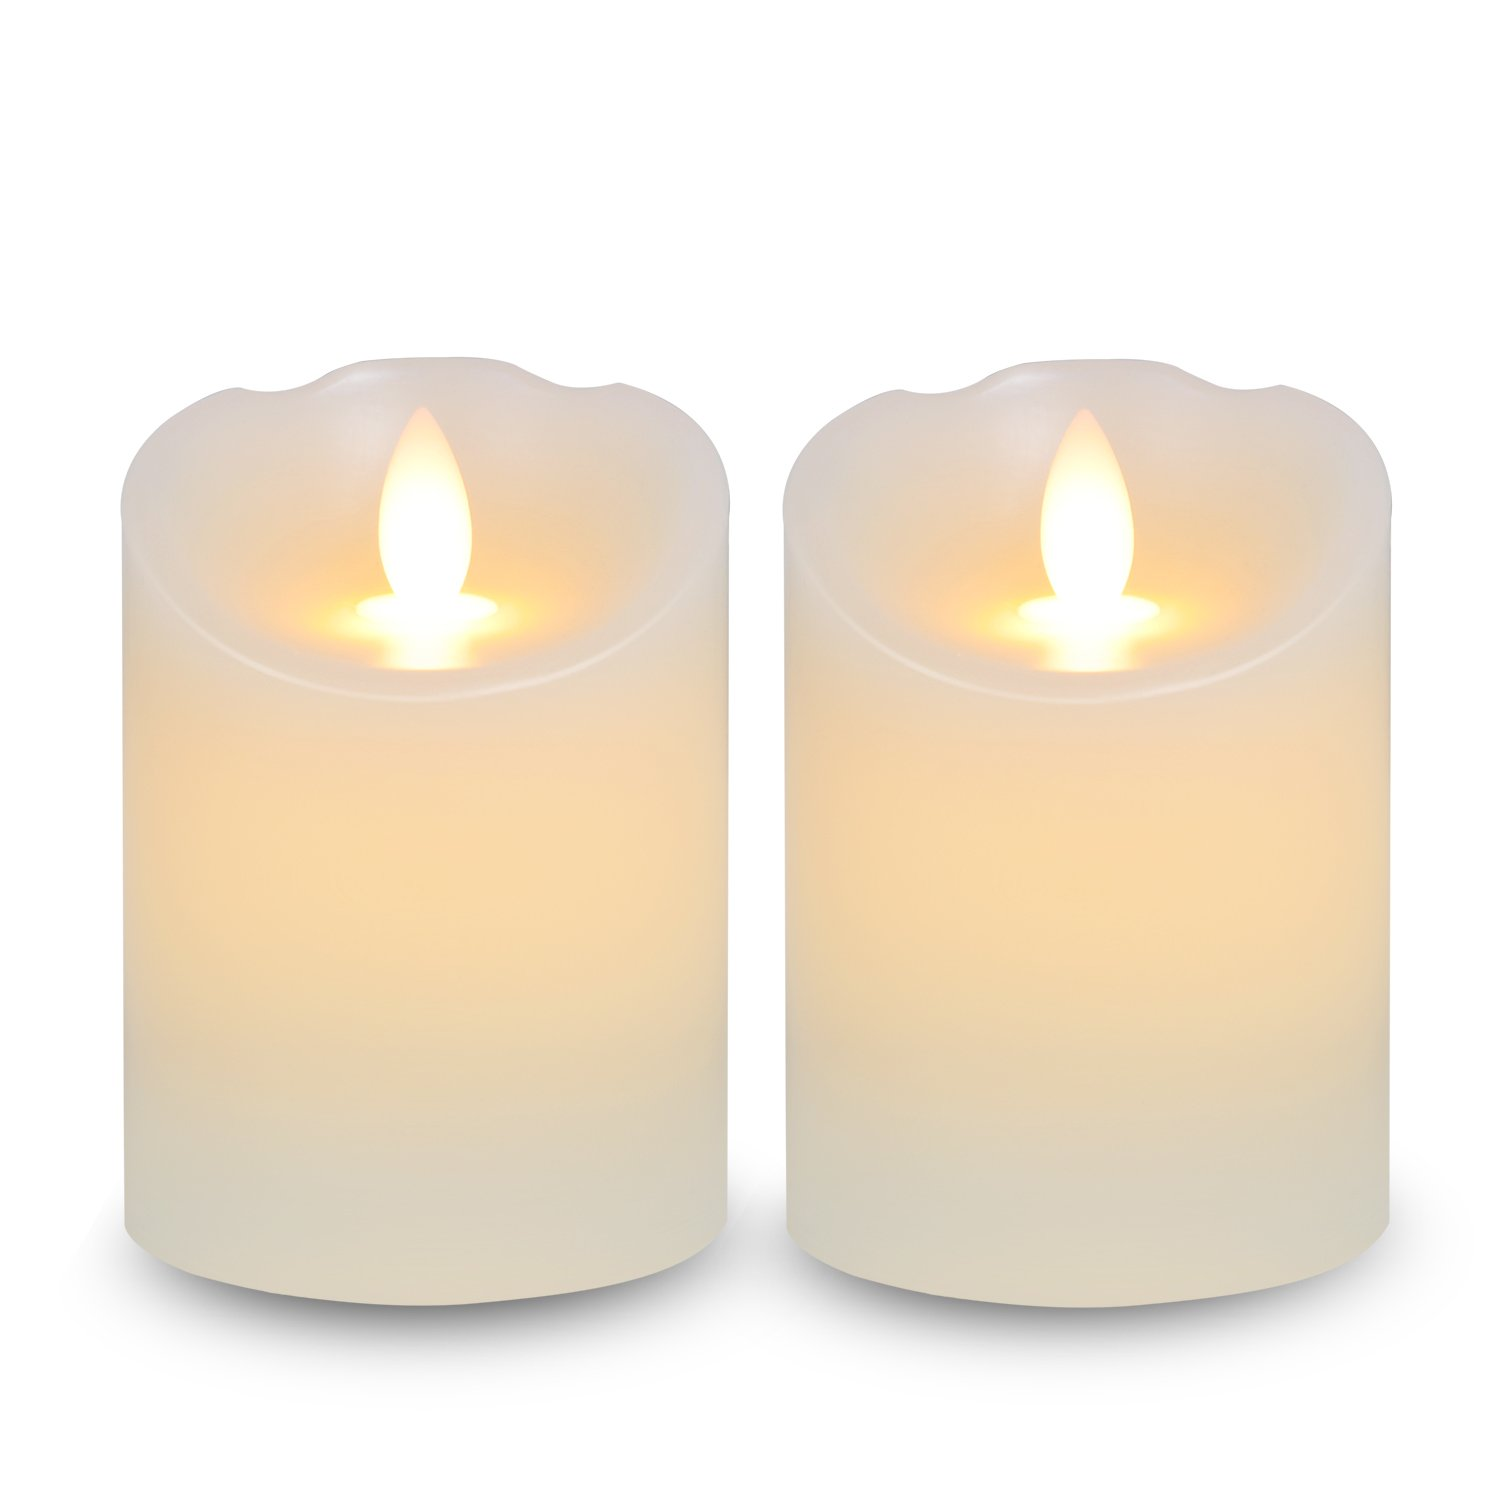 Lafrie Flameless LED Candle, Realistic Battery Candle D3''X H4'' Set of 2 Ivory Real Wax Pillar LED Candles for Wedding, Birthday Gift, Churches, Harry Potter Party Decorations